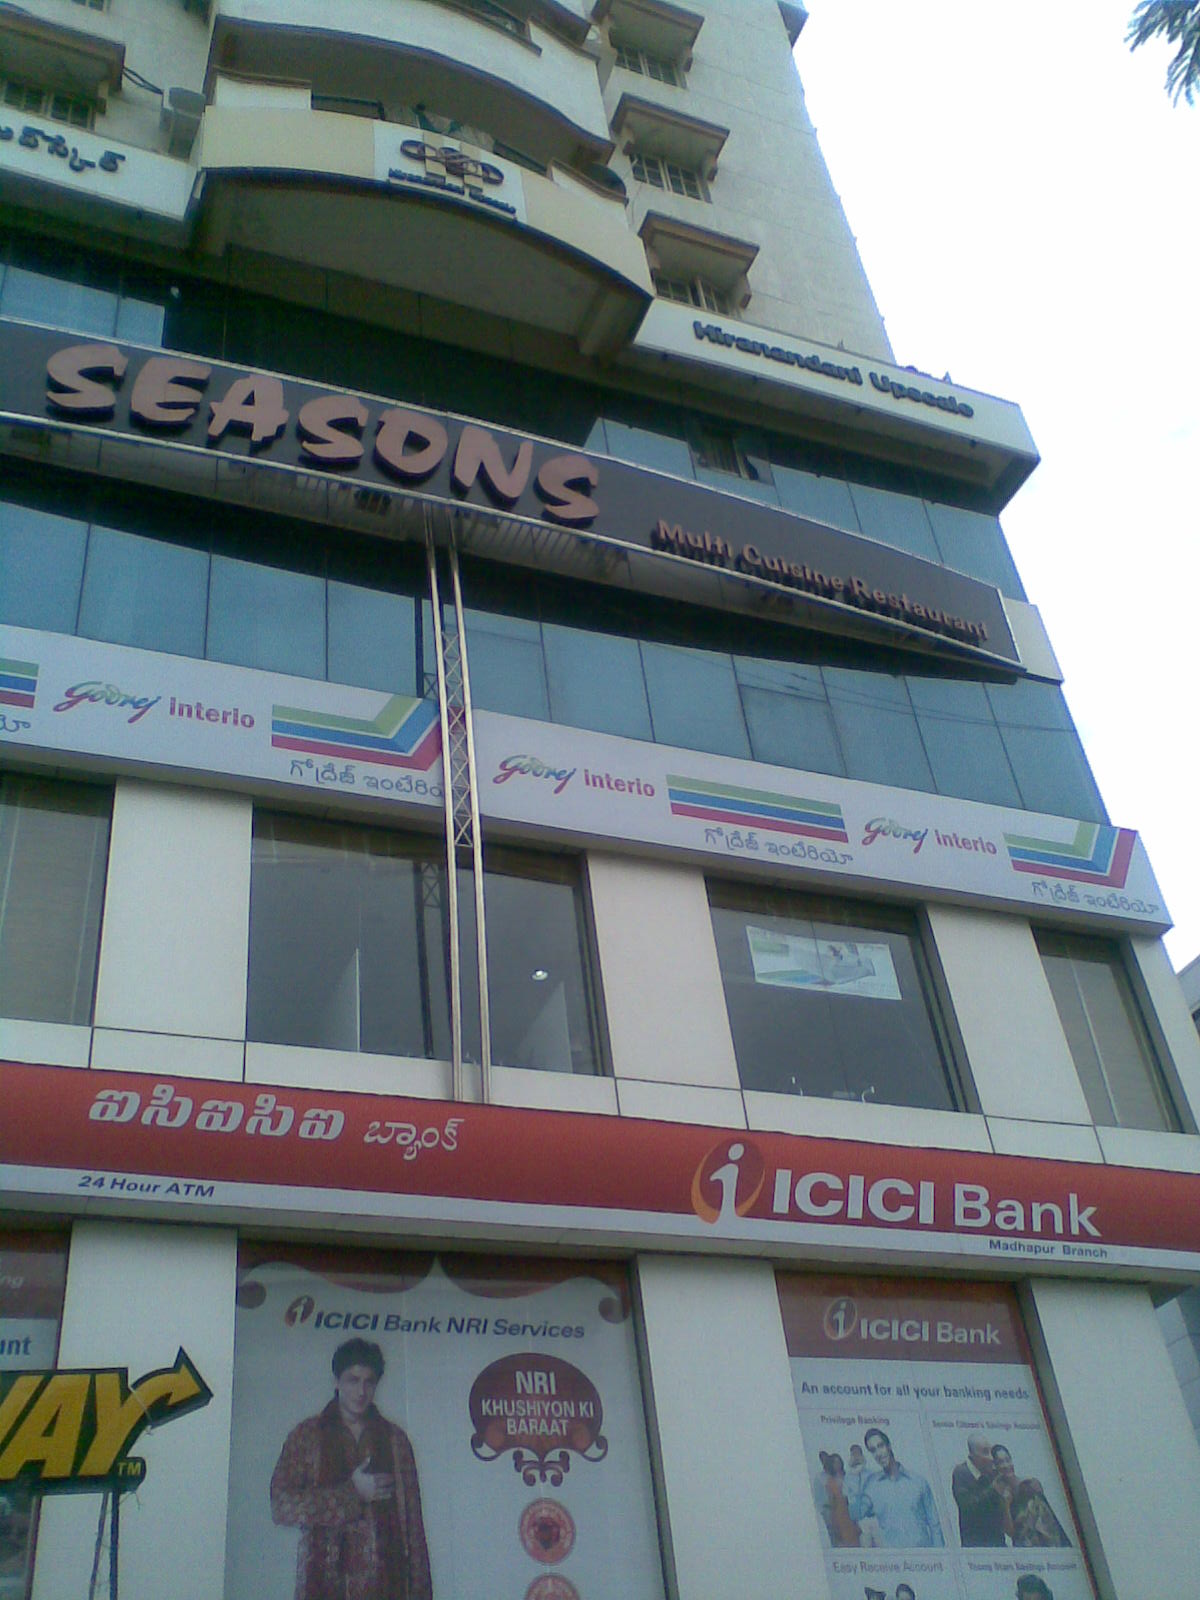 icici bank branches in hyderabad hitech city